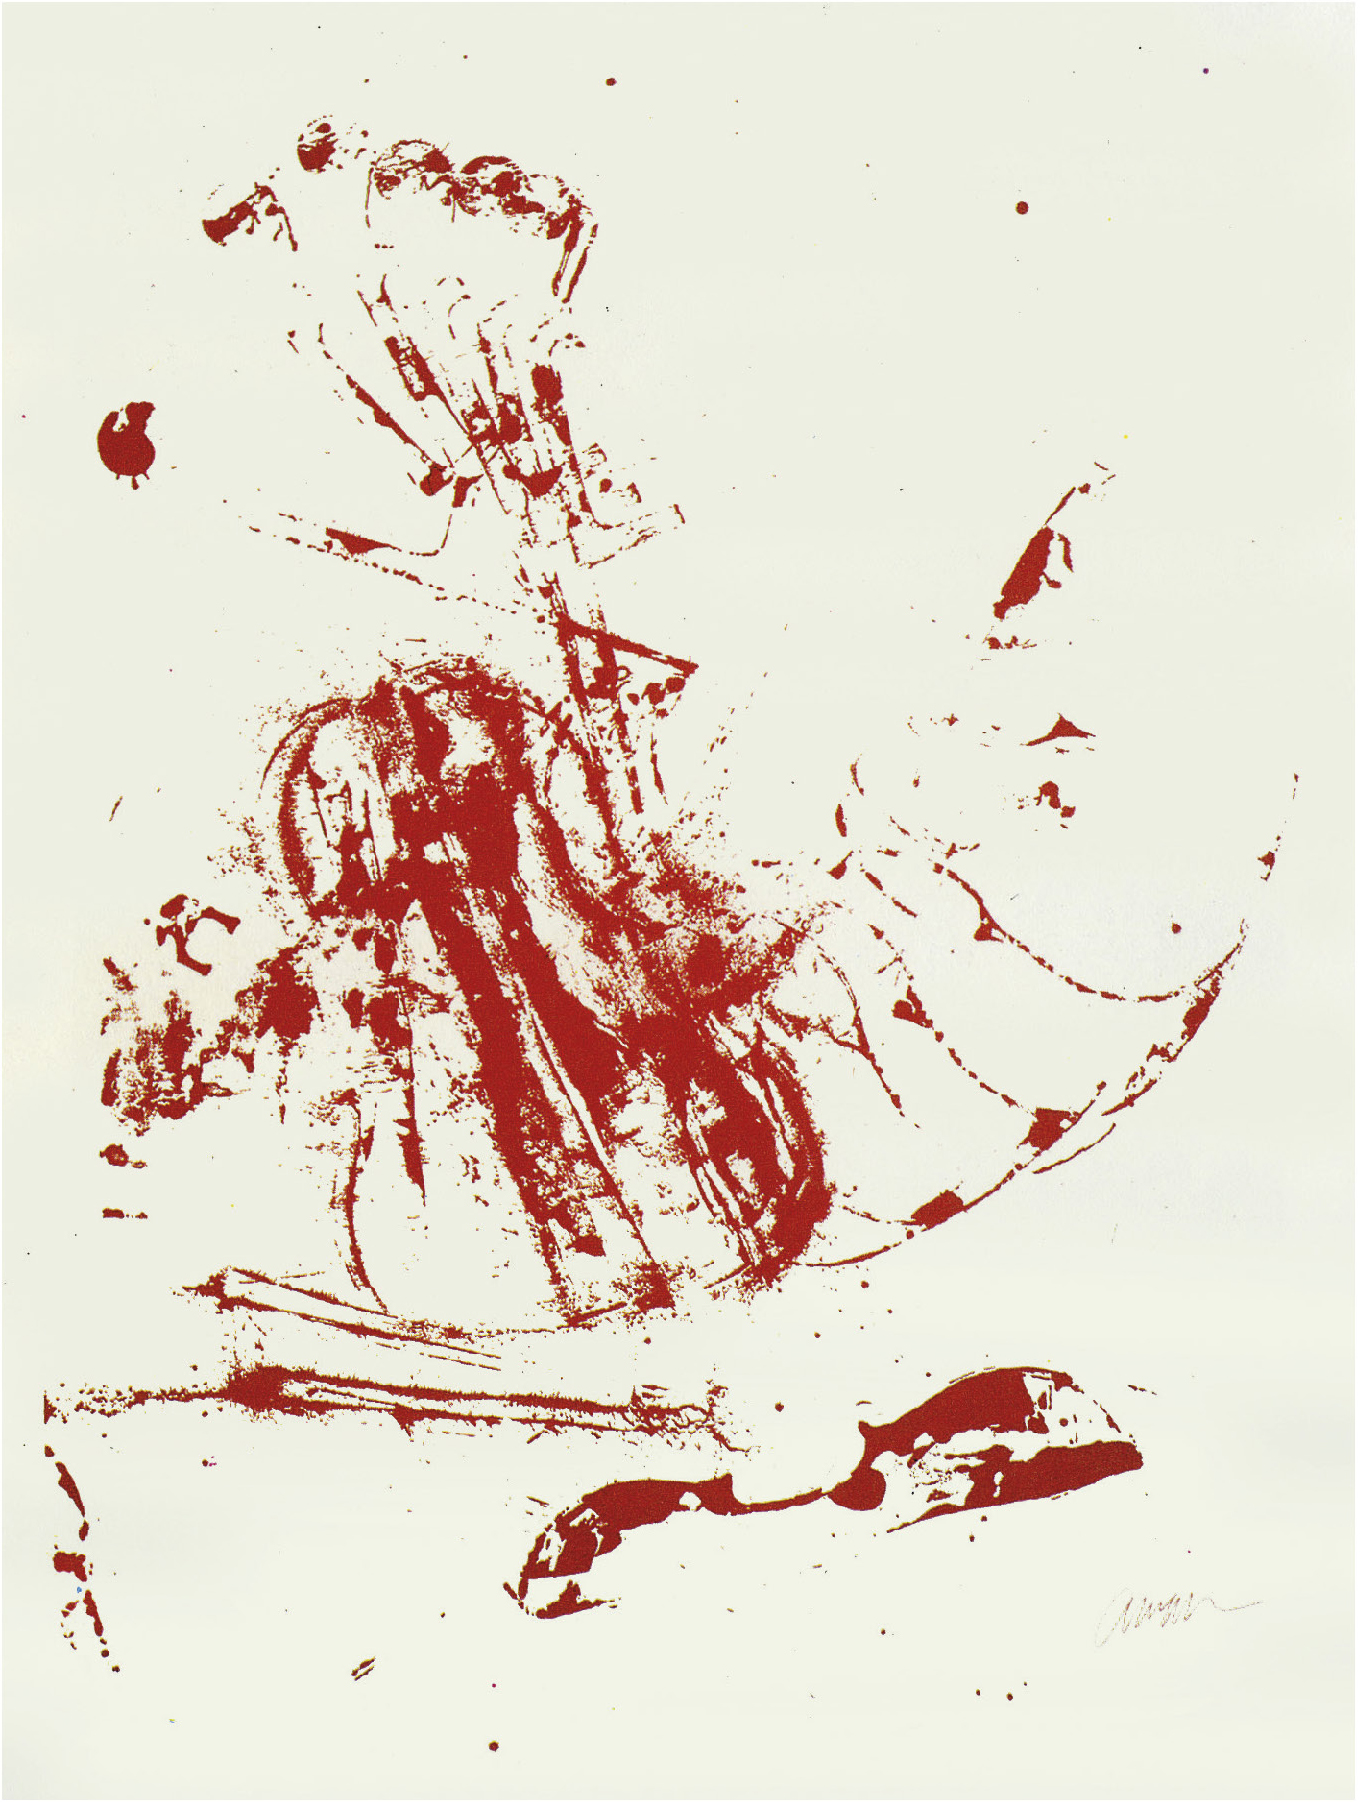 Lot 1 - ARMAN Fernandez (1928-2005) Music Stop N°2, 1971 - Serigraphy in two colors - Signed [...]